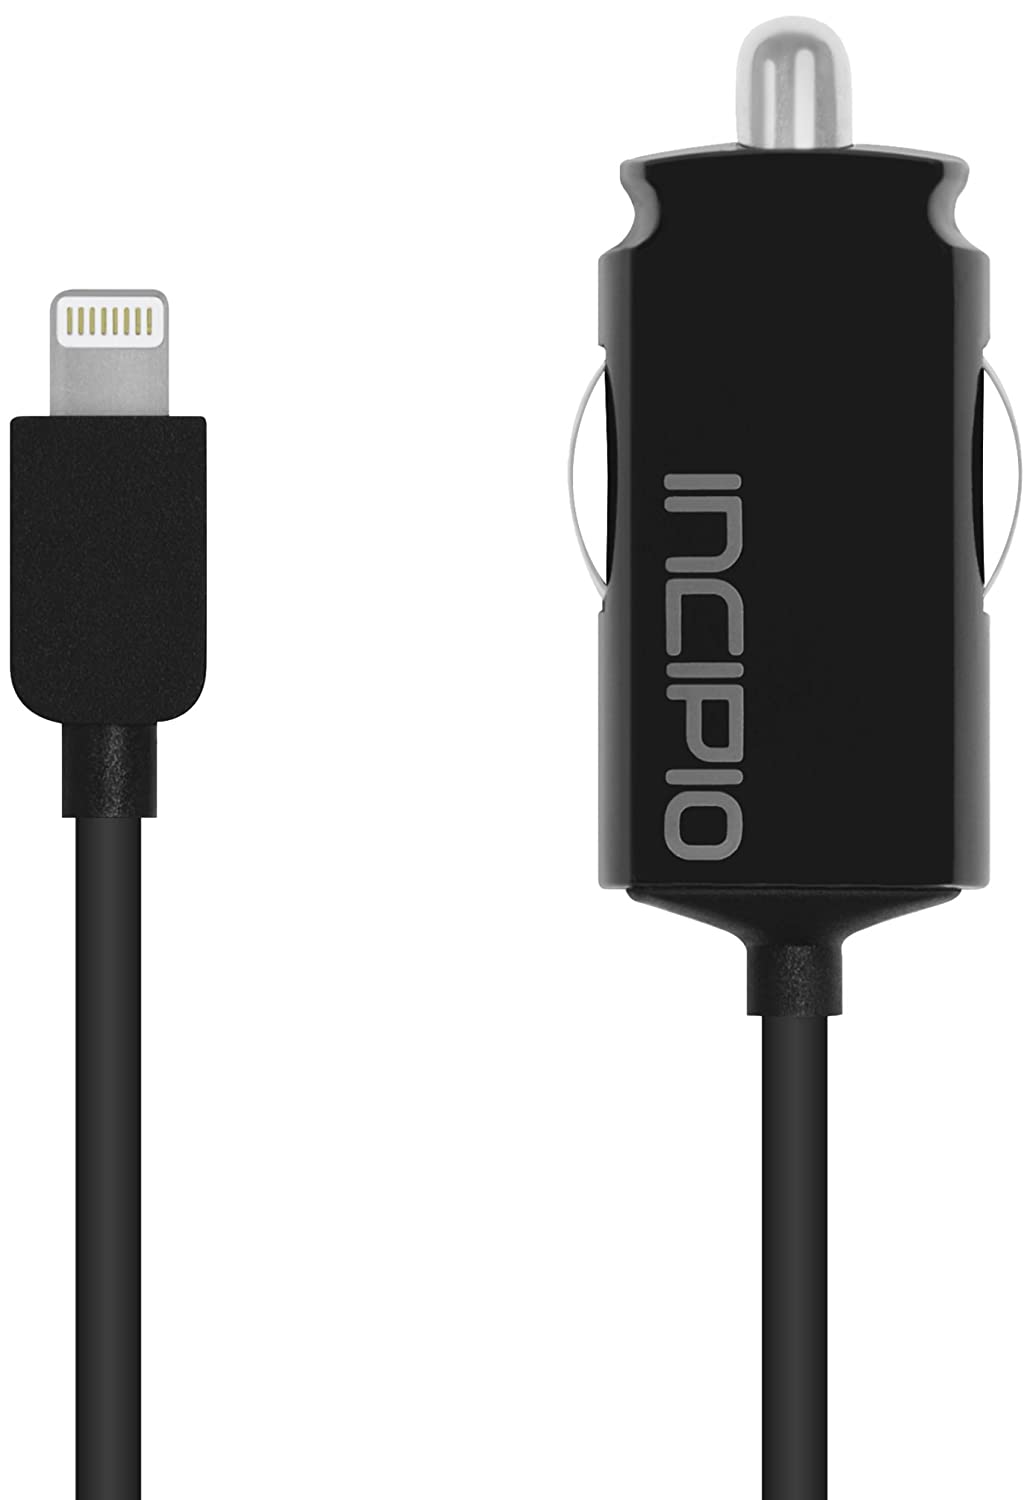 Retail Packaging Black Incipio IP-693 Ultra Compact Auto Charger 2.1A with Captive Cable for iPhone 5